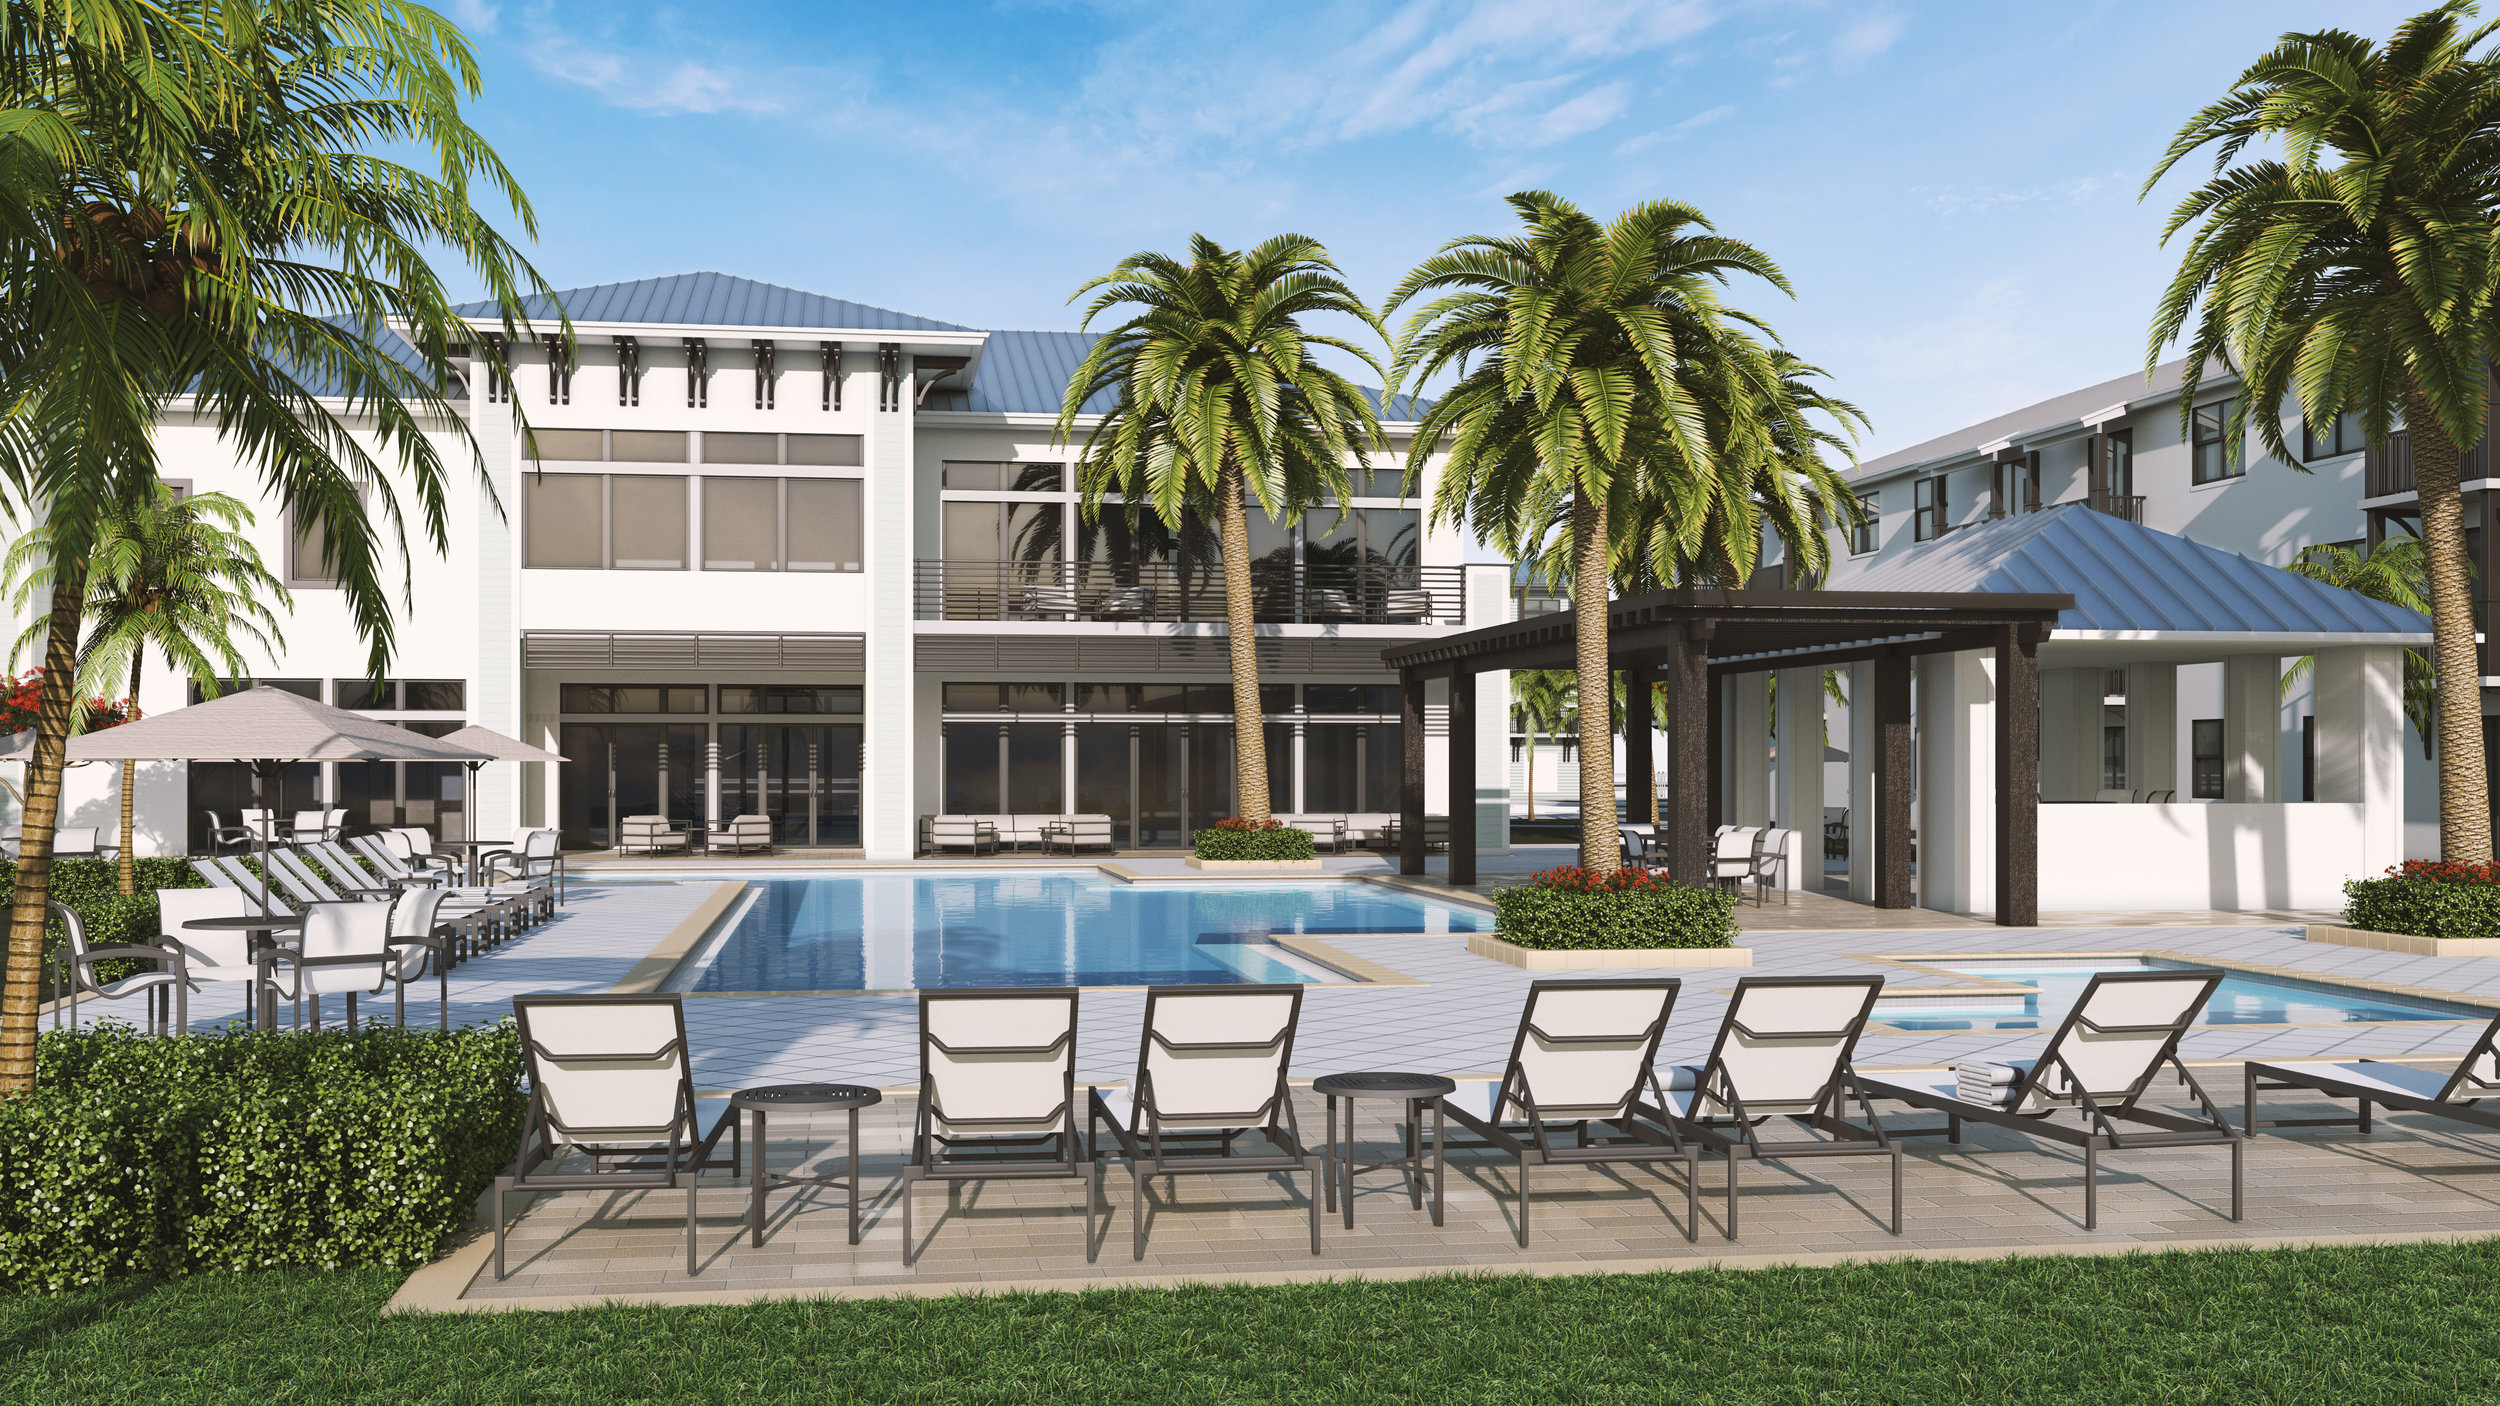 Terra Launches Leasing For Their Newest Rental Community, Pines Garden at City Center In Pembroke Pines